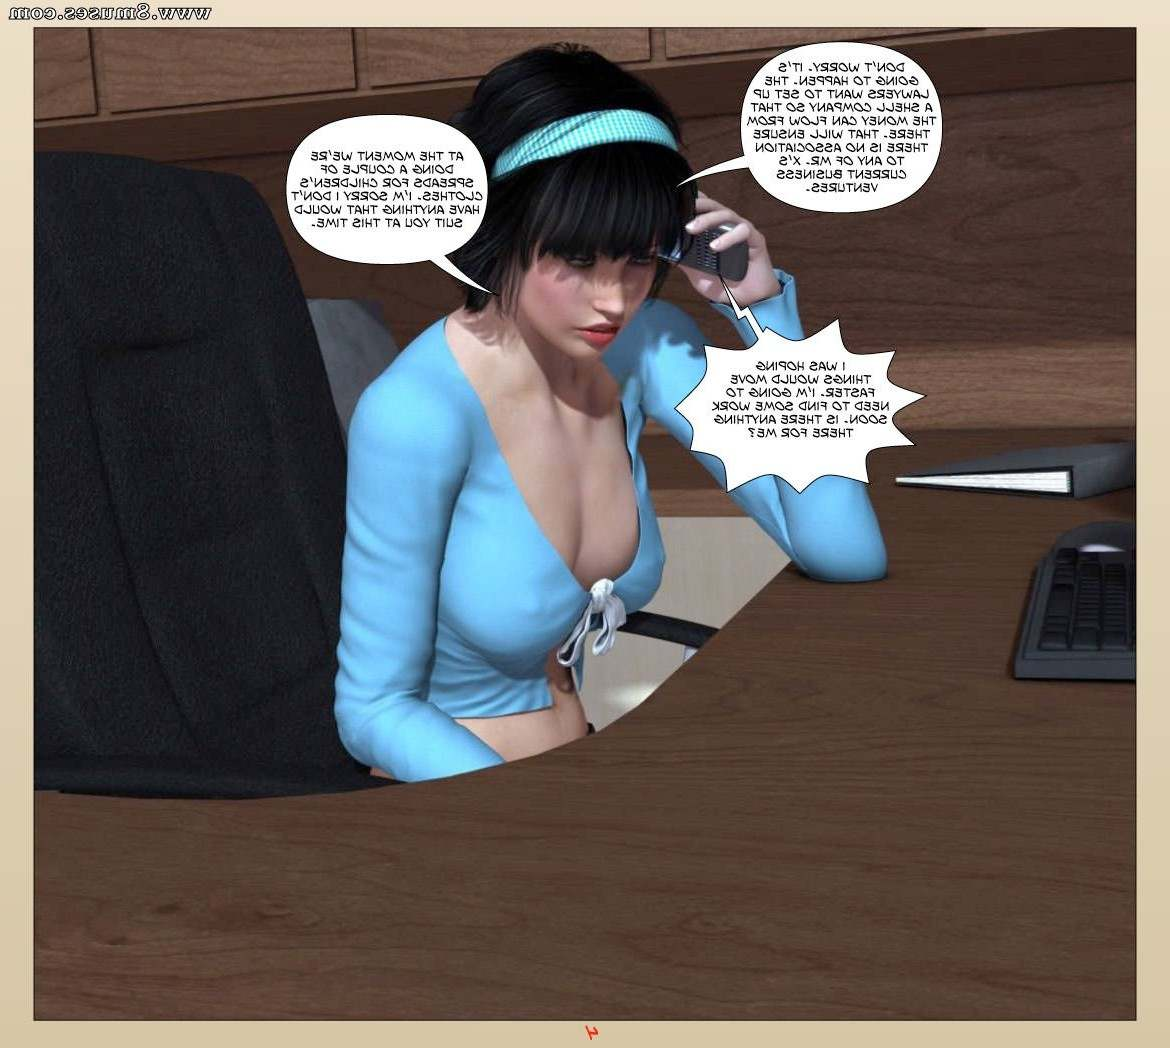 Digital-Empress-Captain-Trips-Comics/Odd-Jobs-Candra-Misky Odd_Jobs_-_Candra_Misky__8muses_-_Sex_and_Porn_Comics_4.jpg